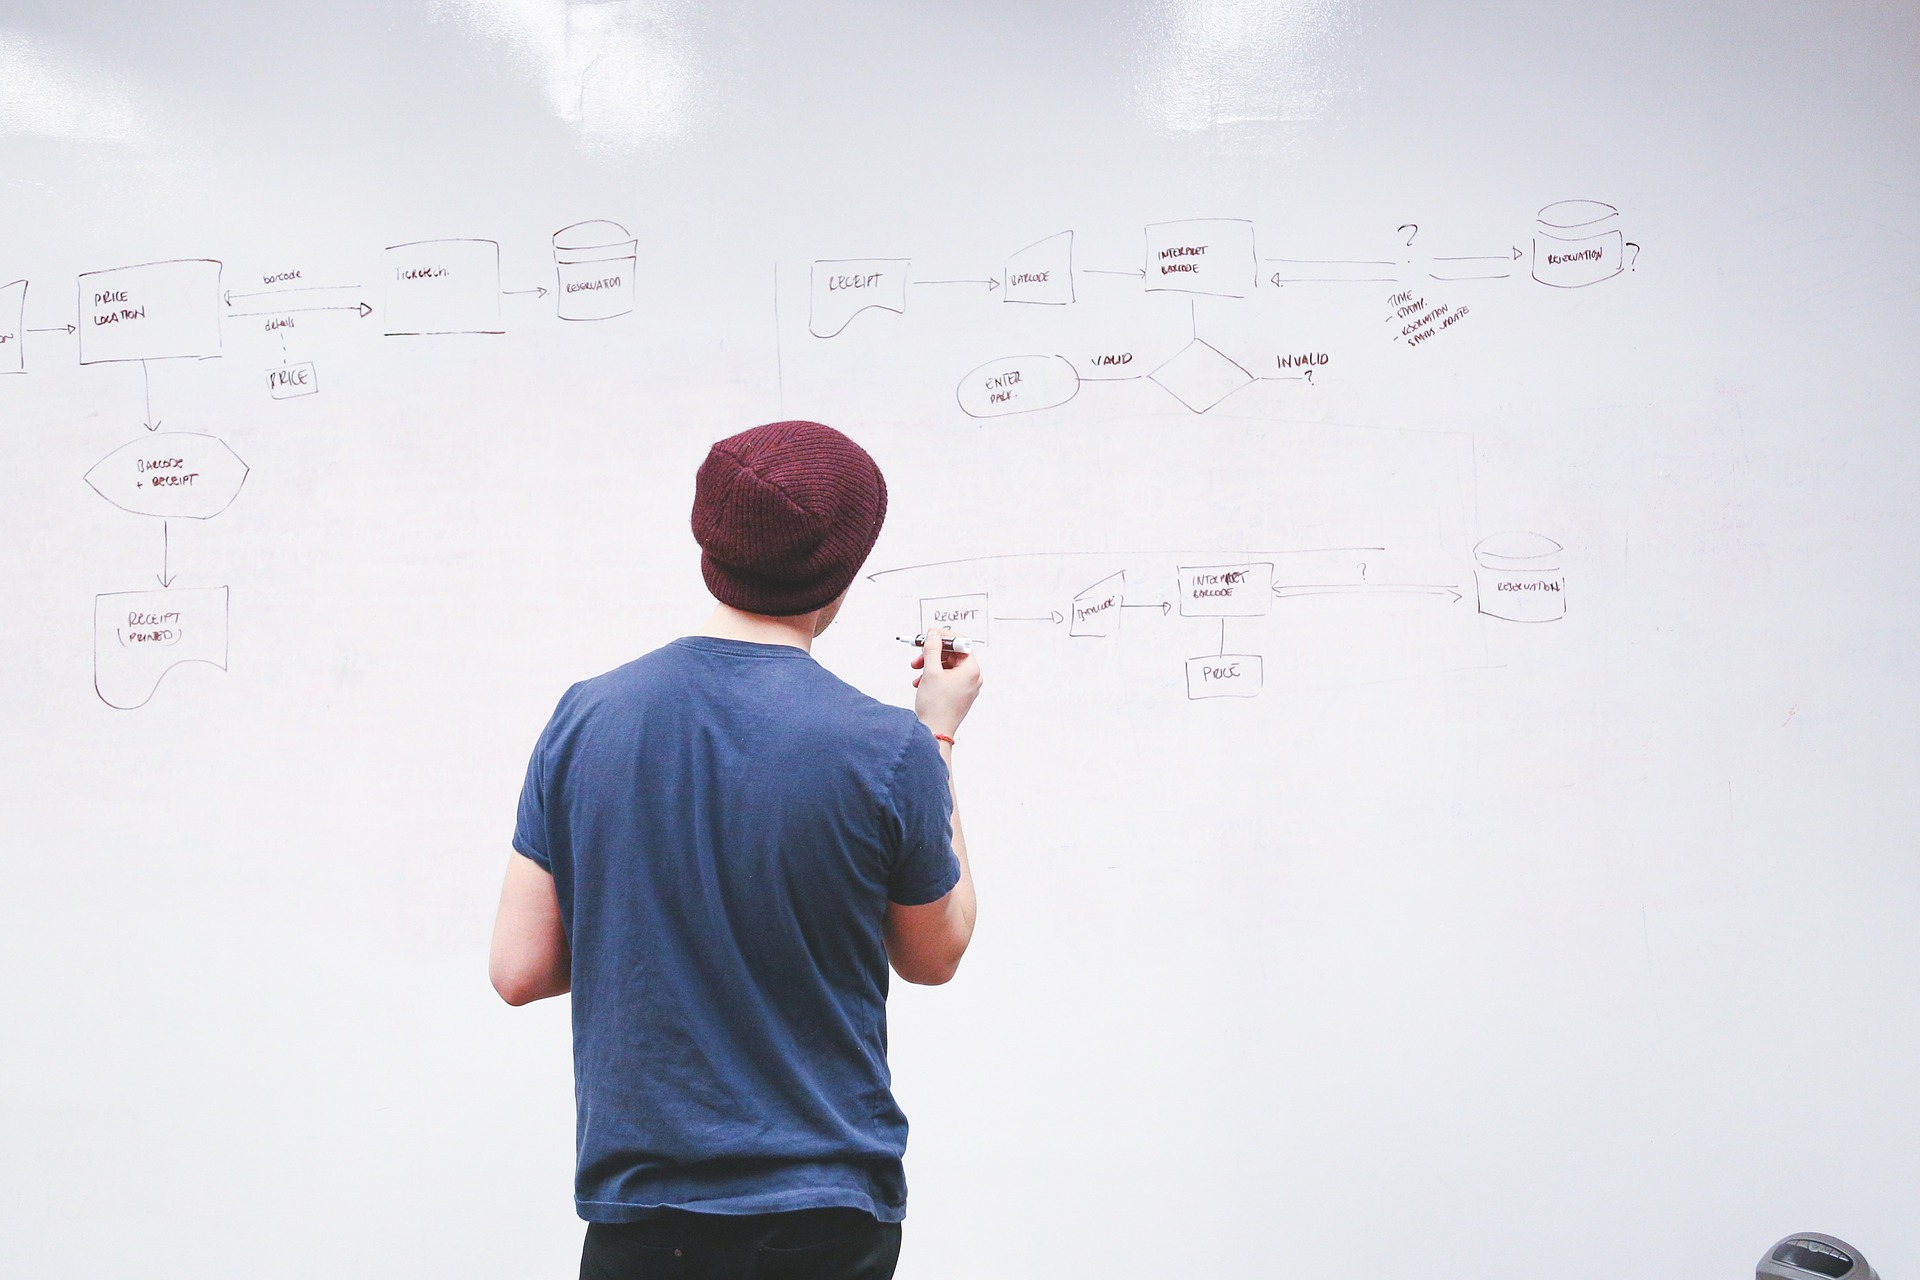 A UX designer's guide to user flows